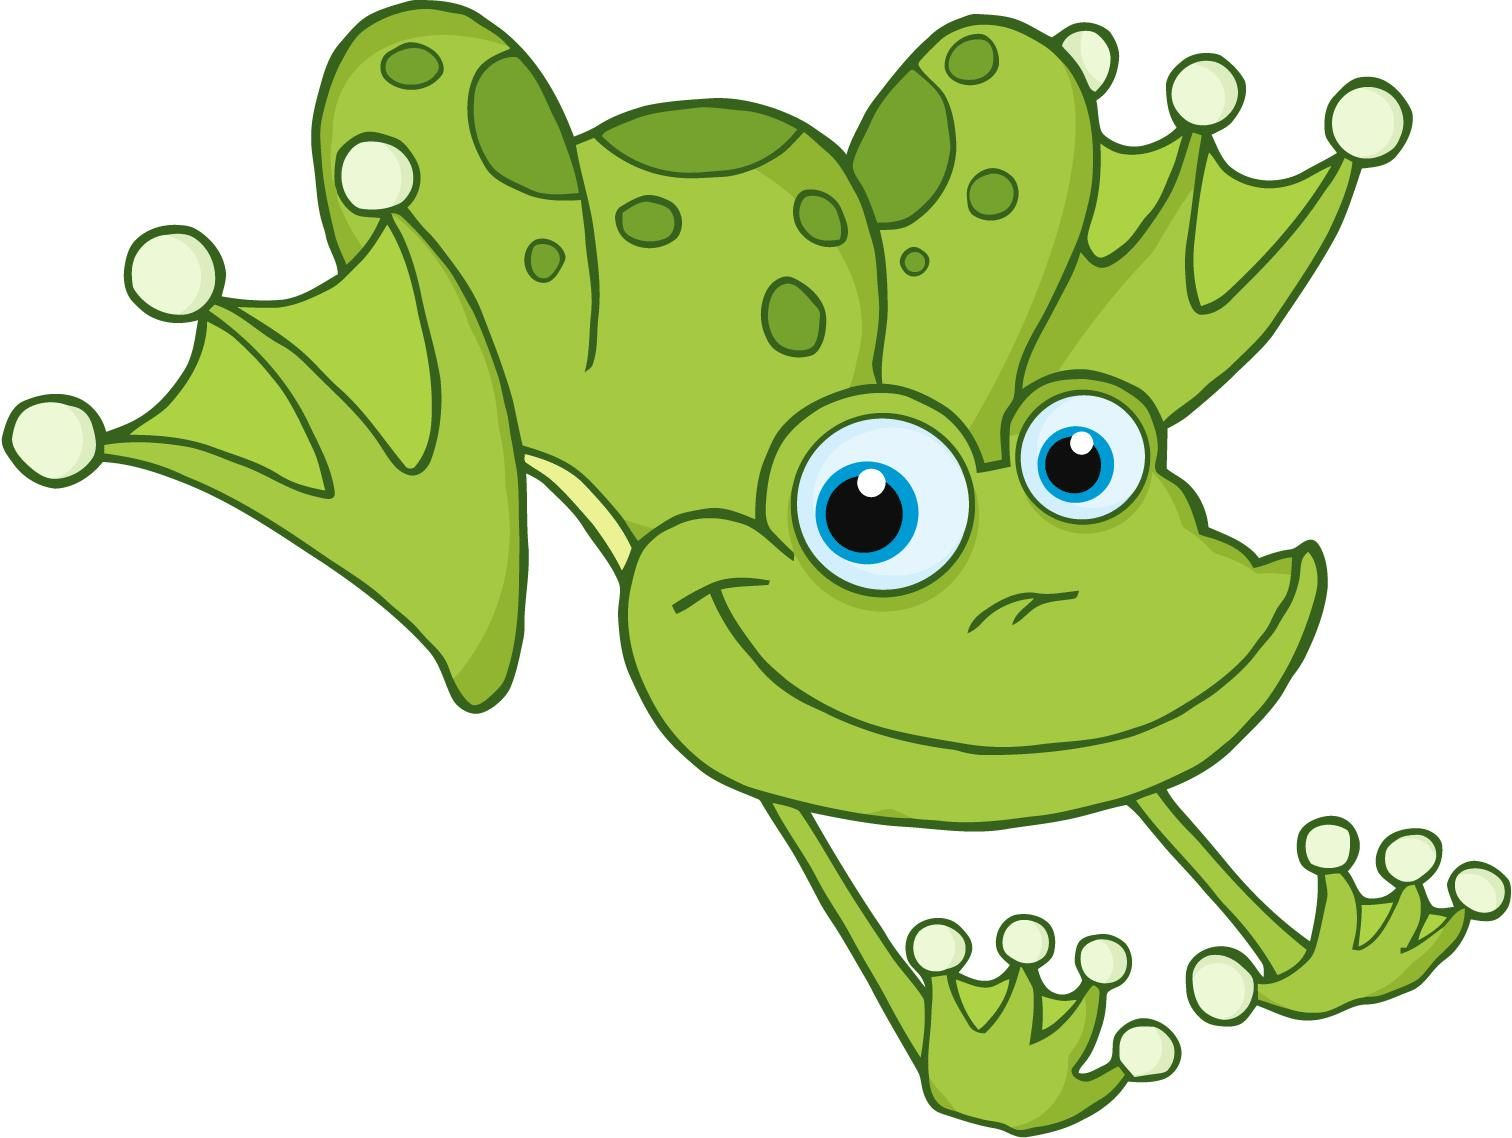 medium resolution of frogs cartoon images this activity as well as all experiments and activities on this blog